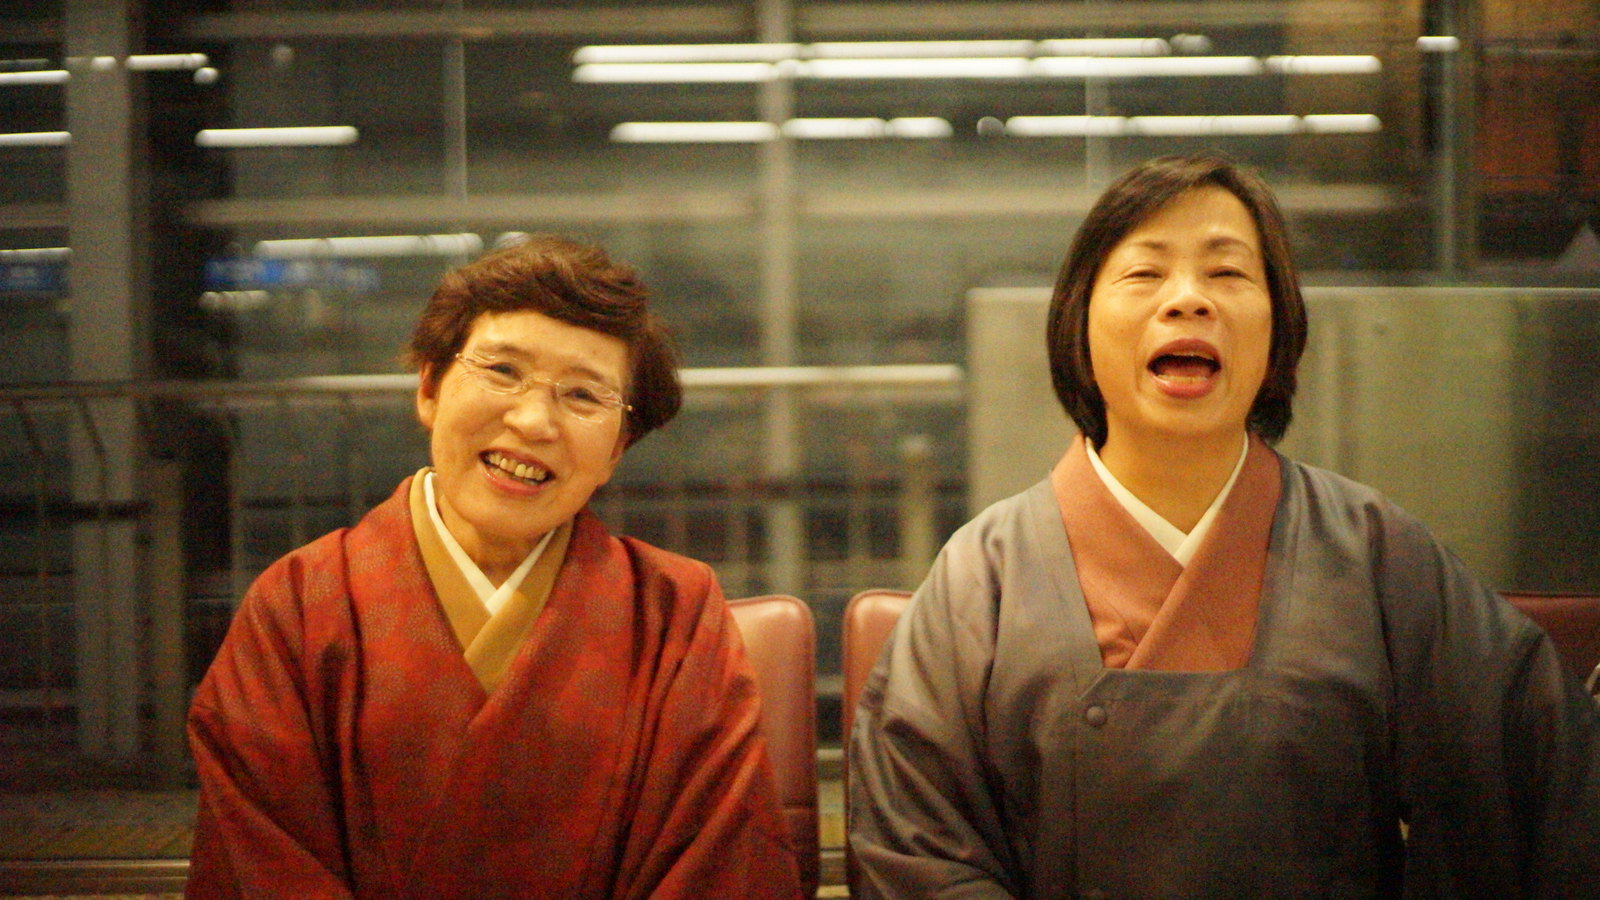 I saw these two in the waiting room for the Shinkansen having a laugh so I asked if I could take their photo.